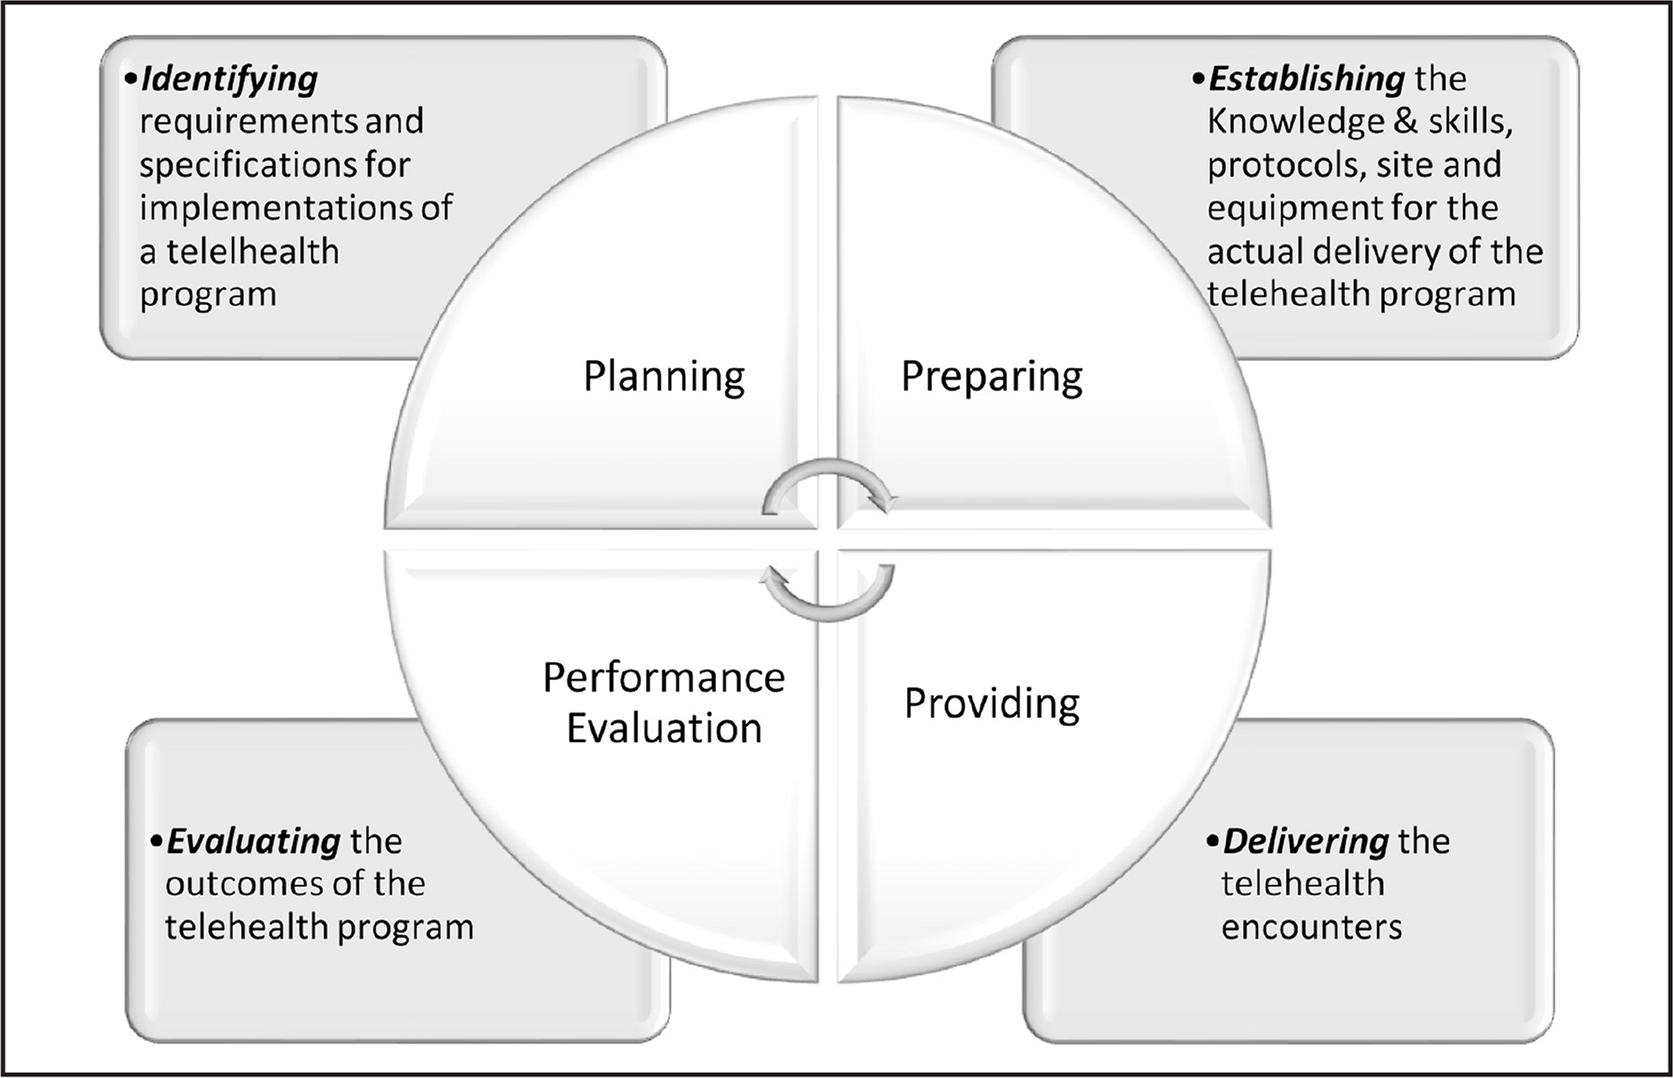 The four Ps of telehealth: planning, preparing, providing, and performance evaluation.